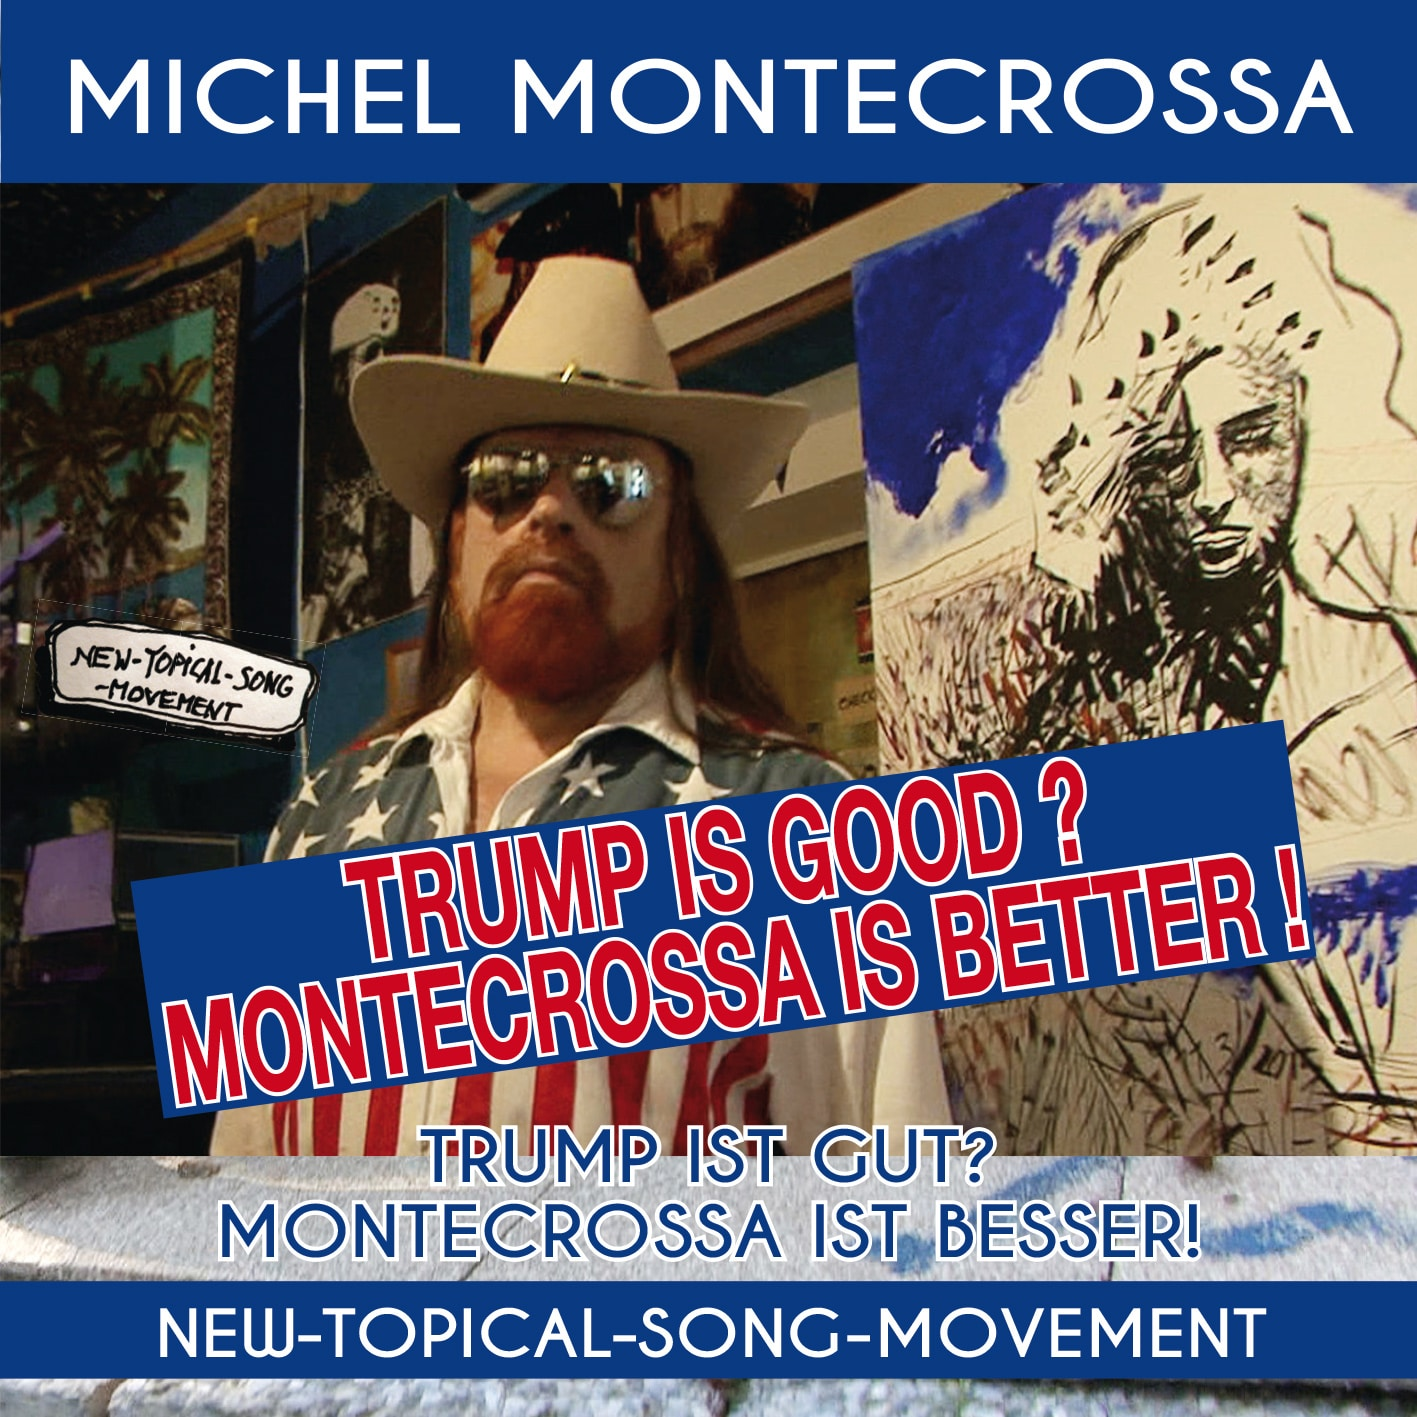 Trump Is Good? Montecrossa Is Better!